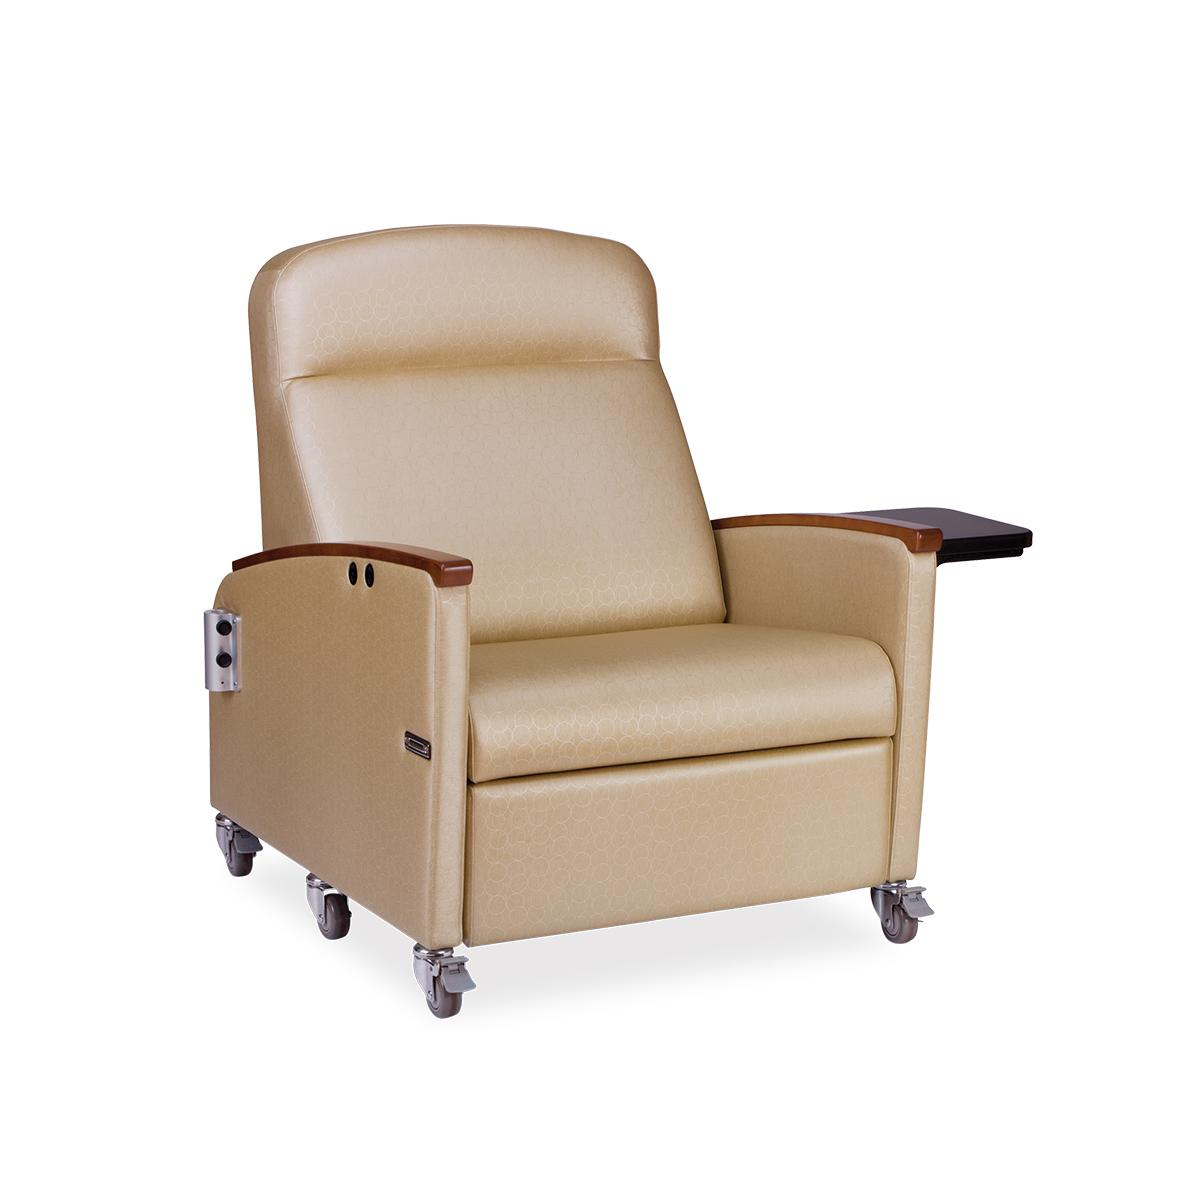 Art of Care Powered Bariatric Recliner, beige, 3/4 view